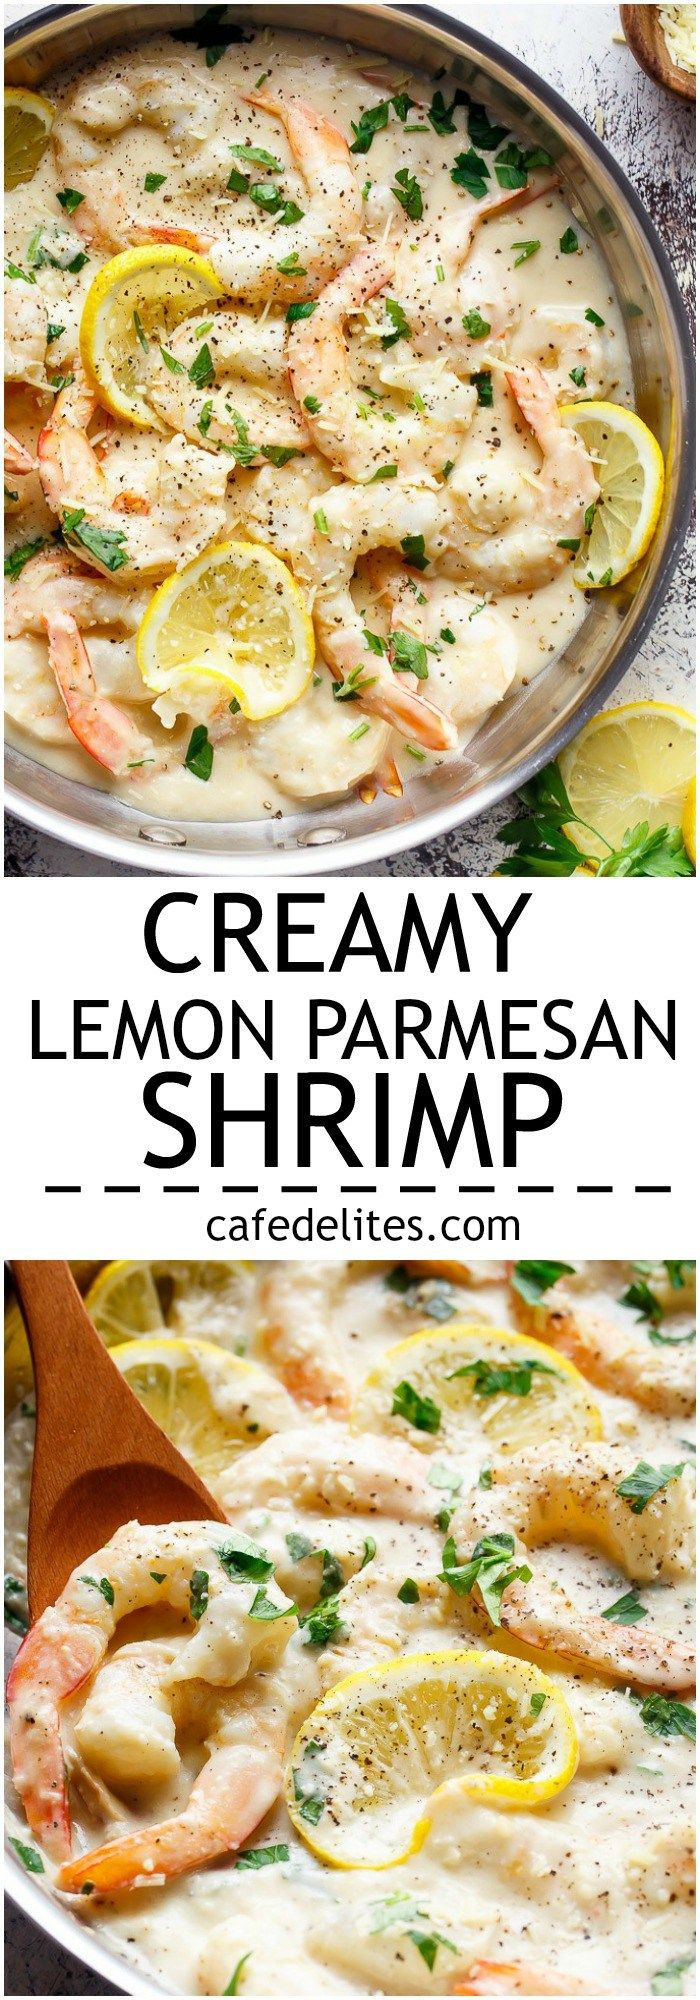 Creamy Lemon Parmesan Shrimp is a restaurant quality gourmet meal! Only minutes to make and full of lemon parmesan flavours with a…